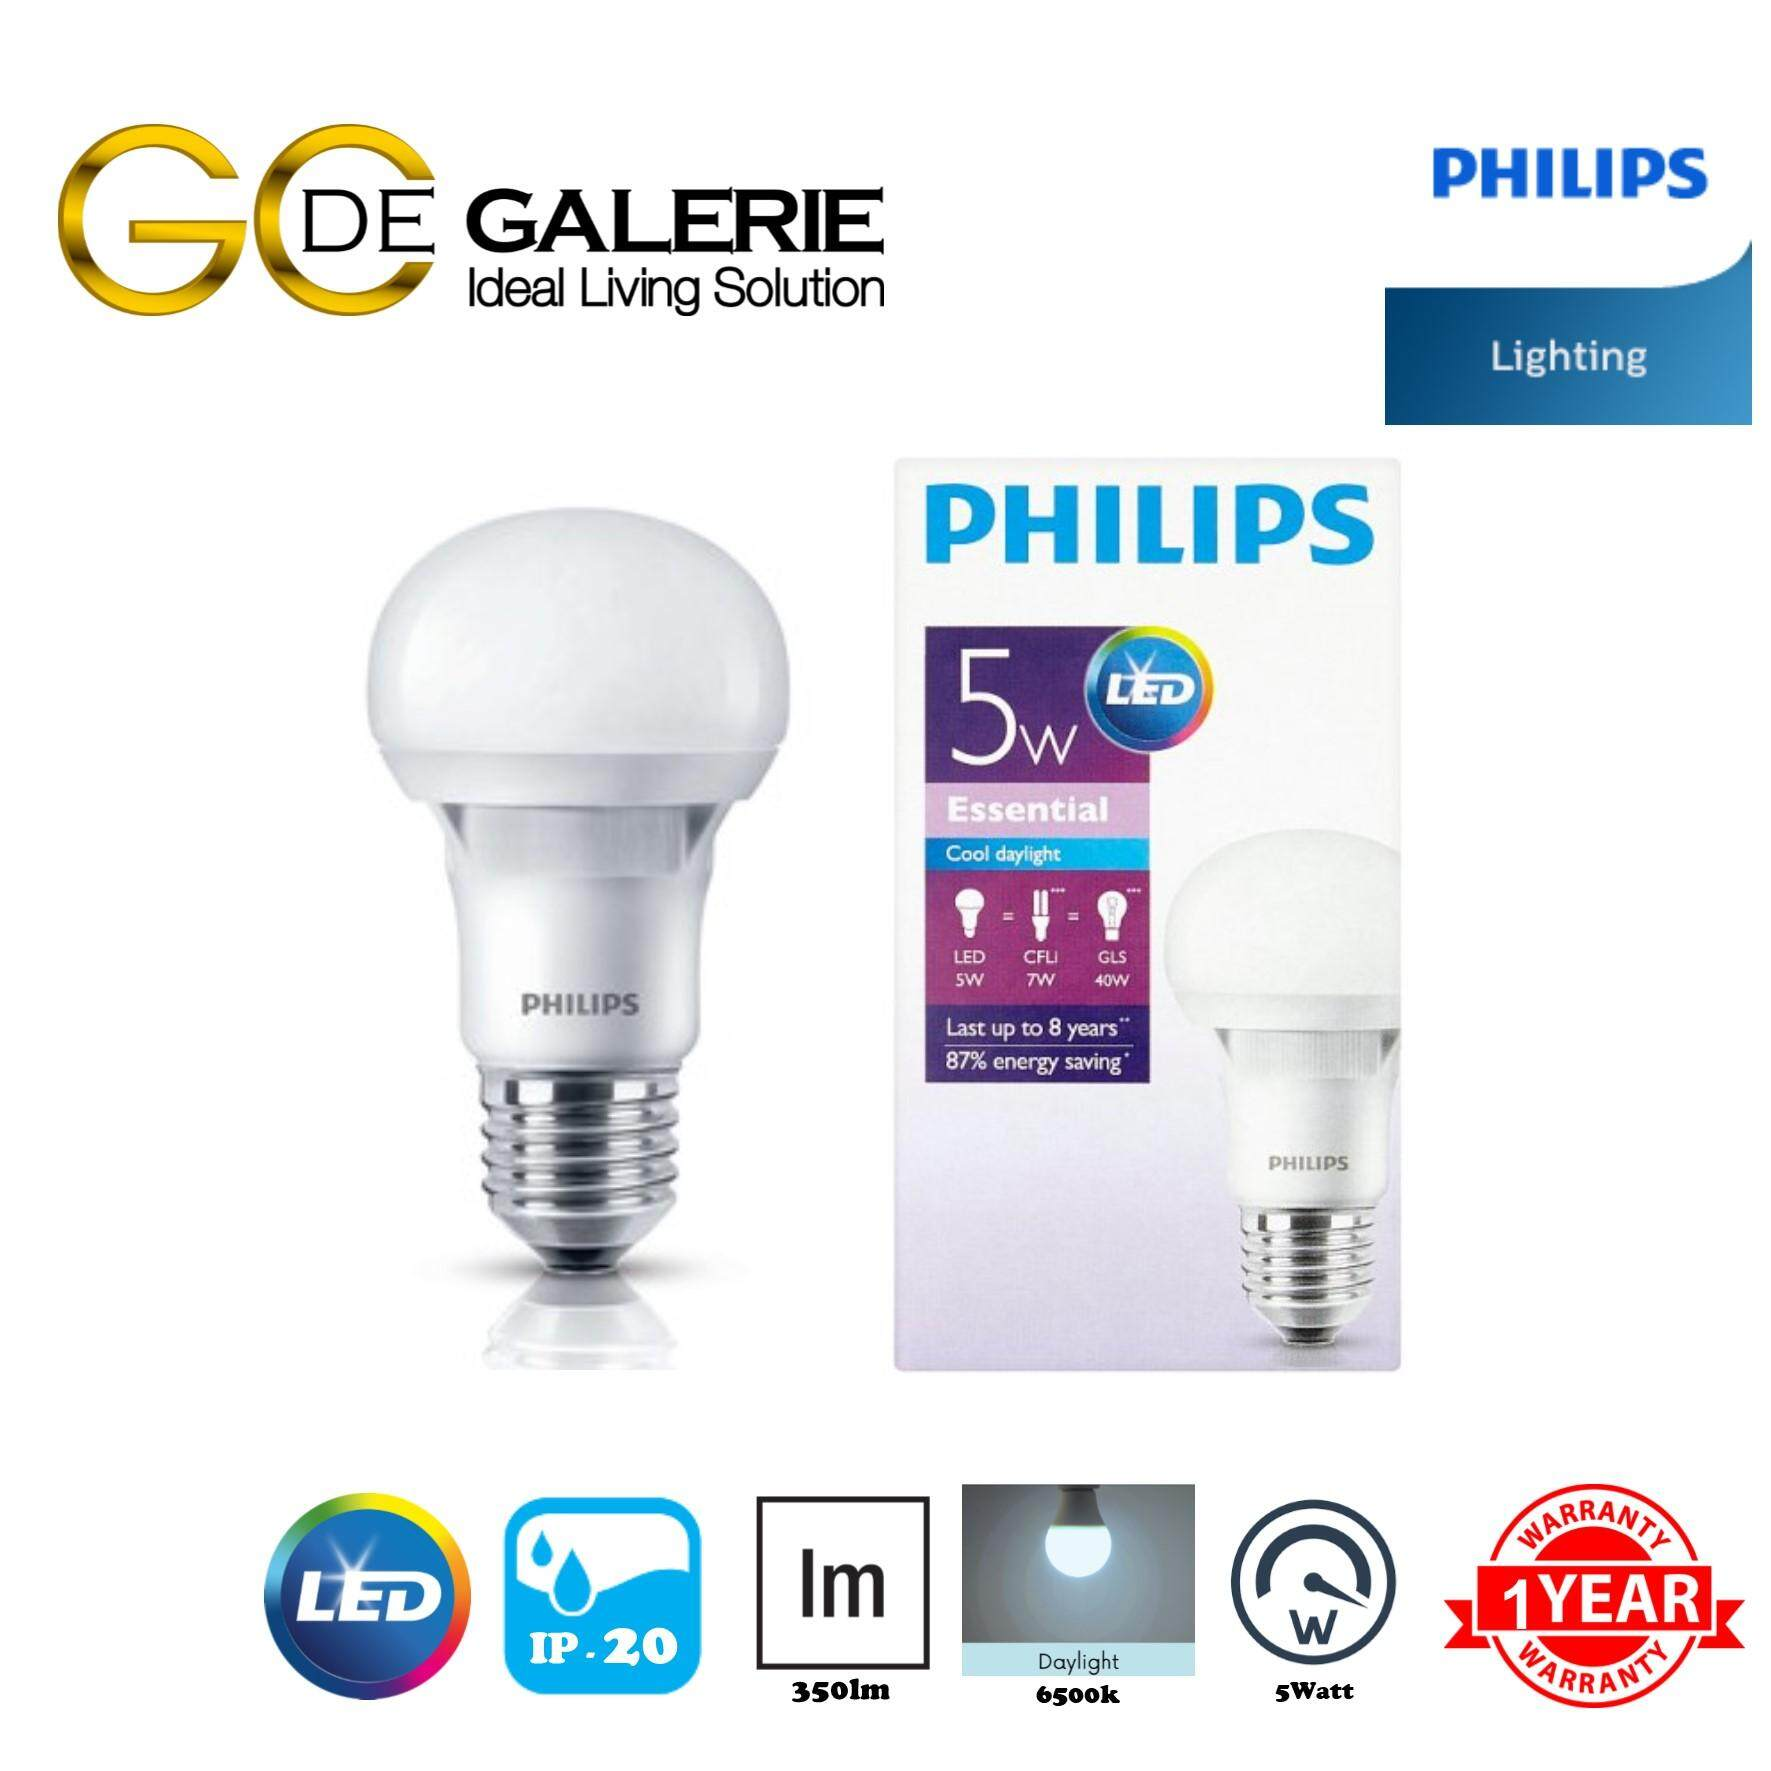 PHILIPS 5W ESSENTIAL LED BULB - 6500K COOL DAYLIGHT E27